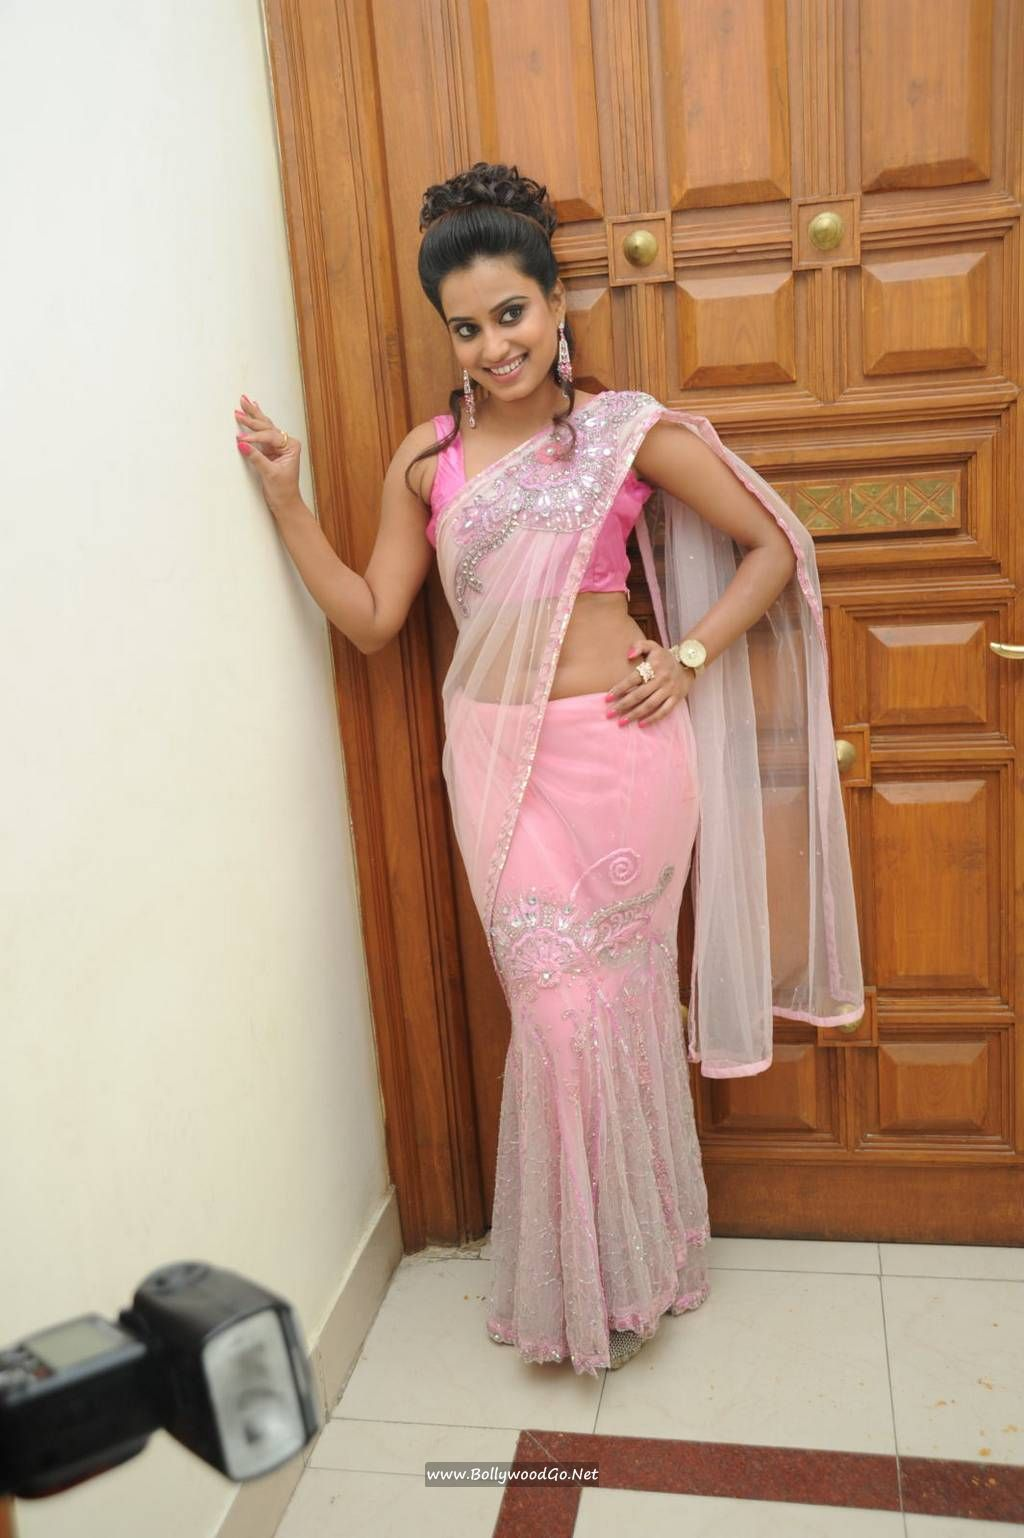 Actress Dimple at Romance Audio Launch Event AdlyfIEn